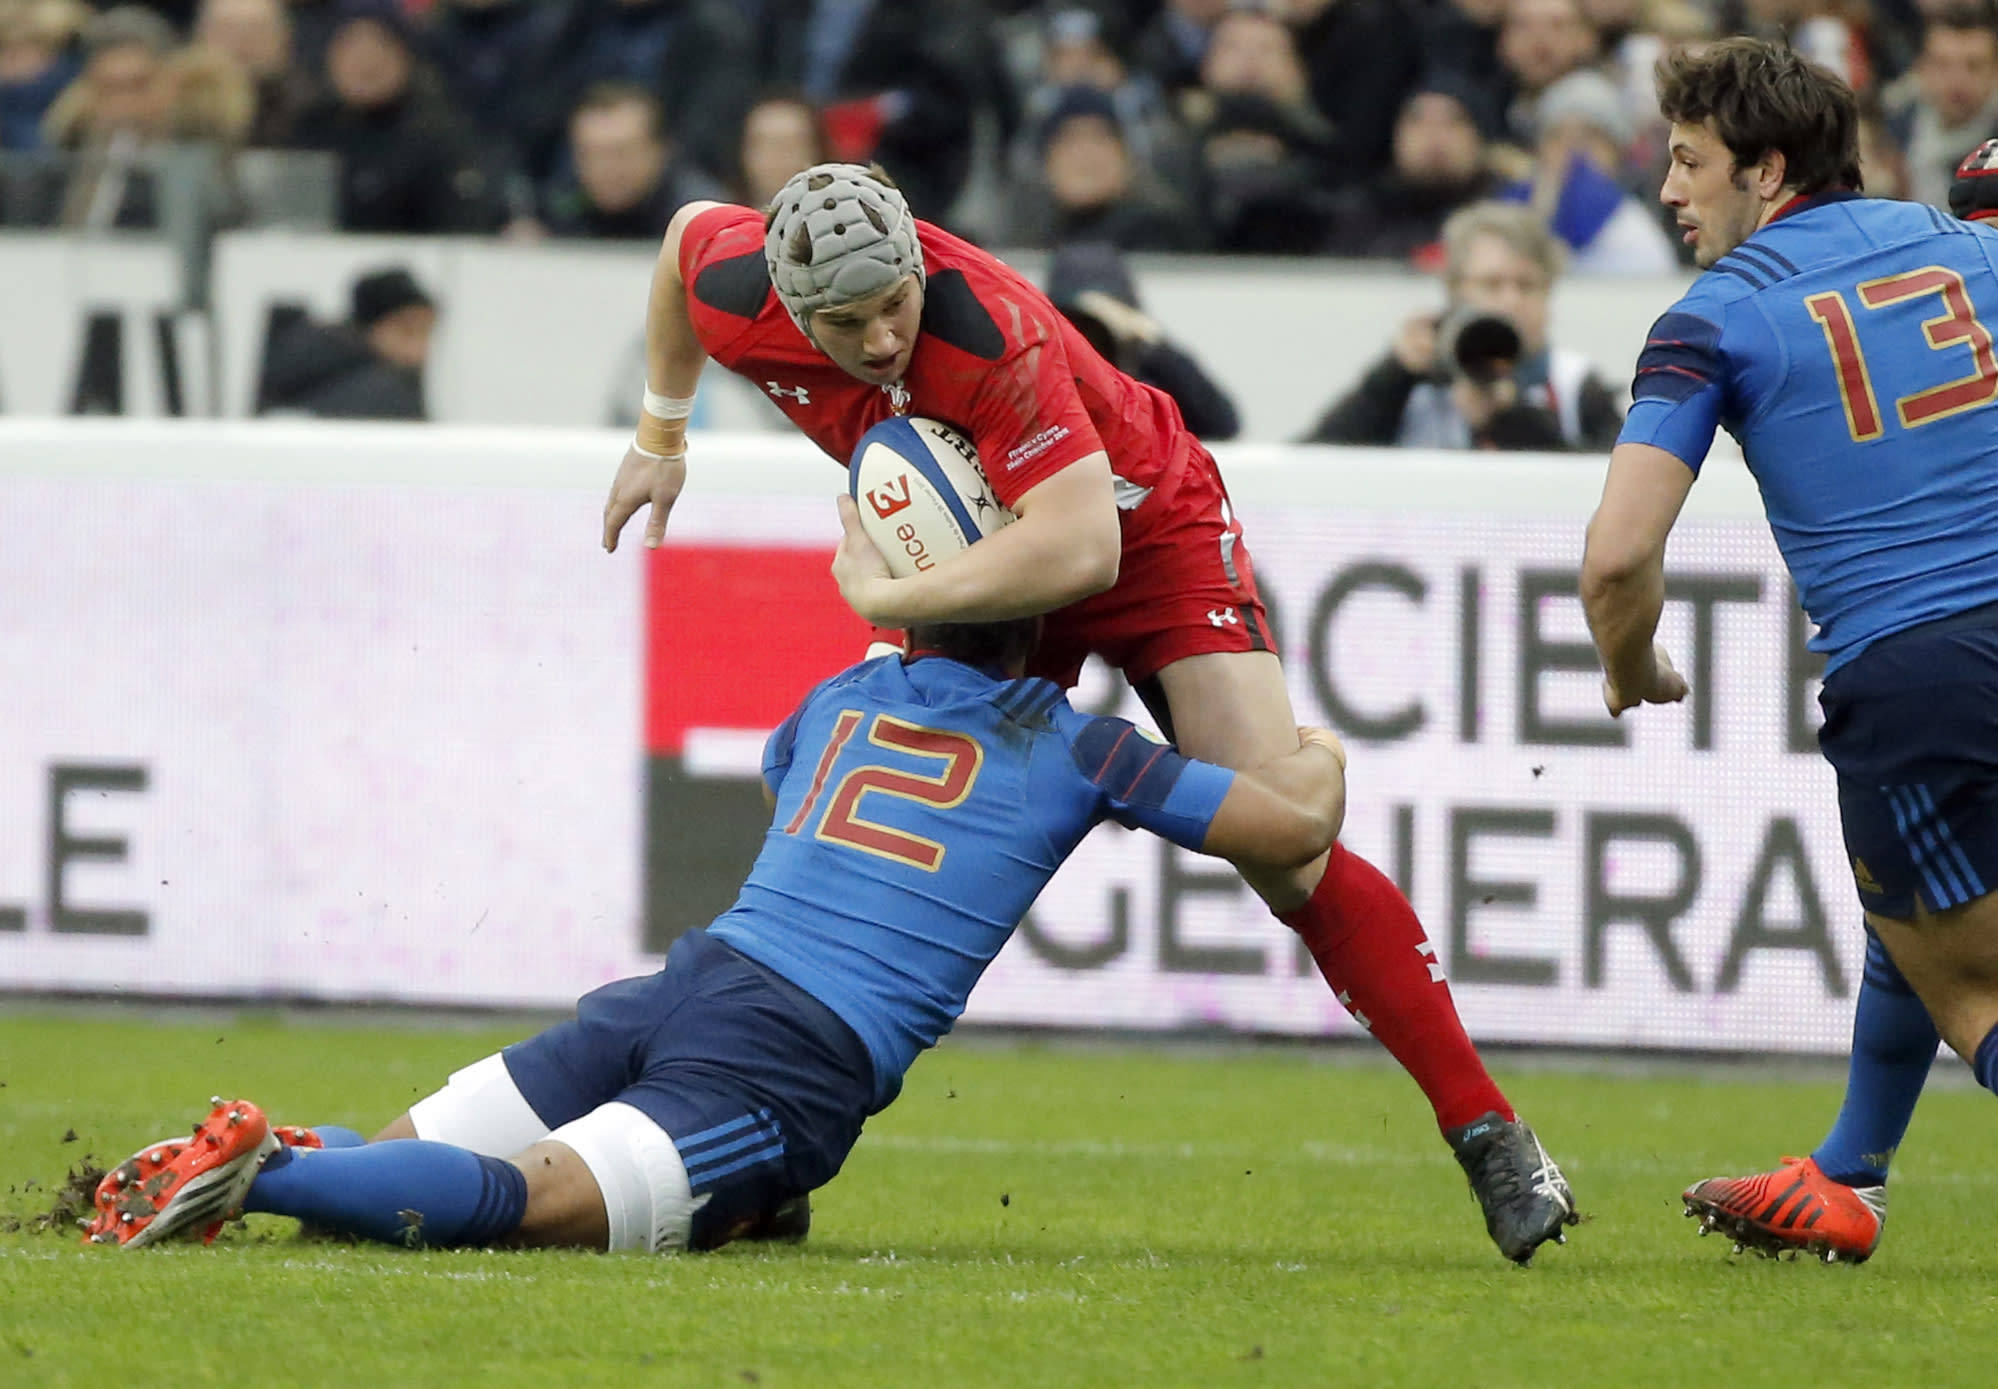 6N: Wales wins 20-13 to keep title chance alive